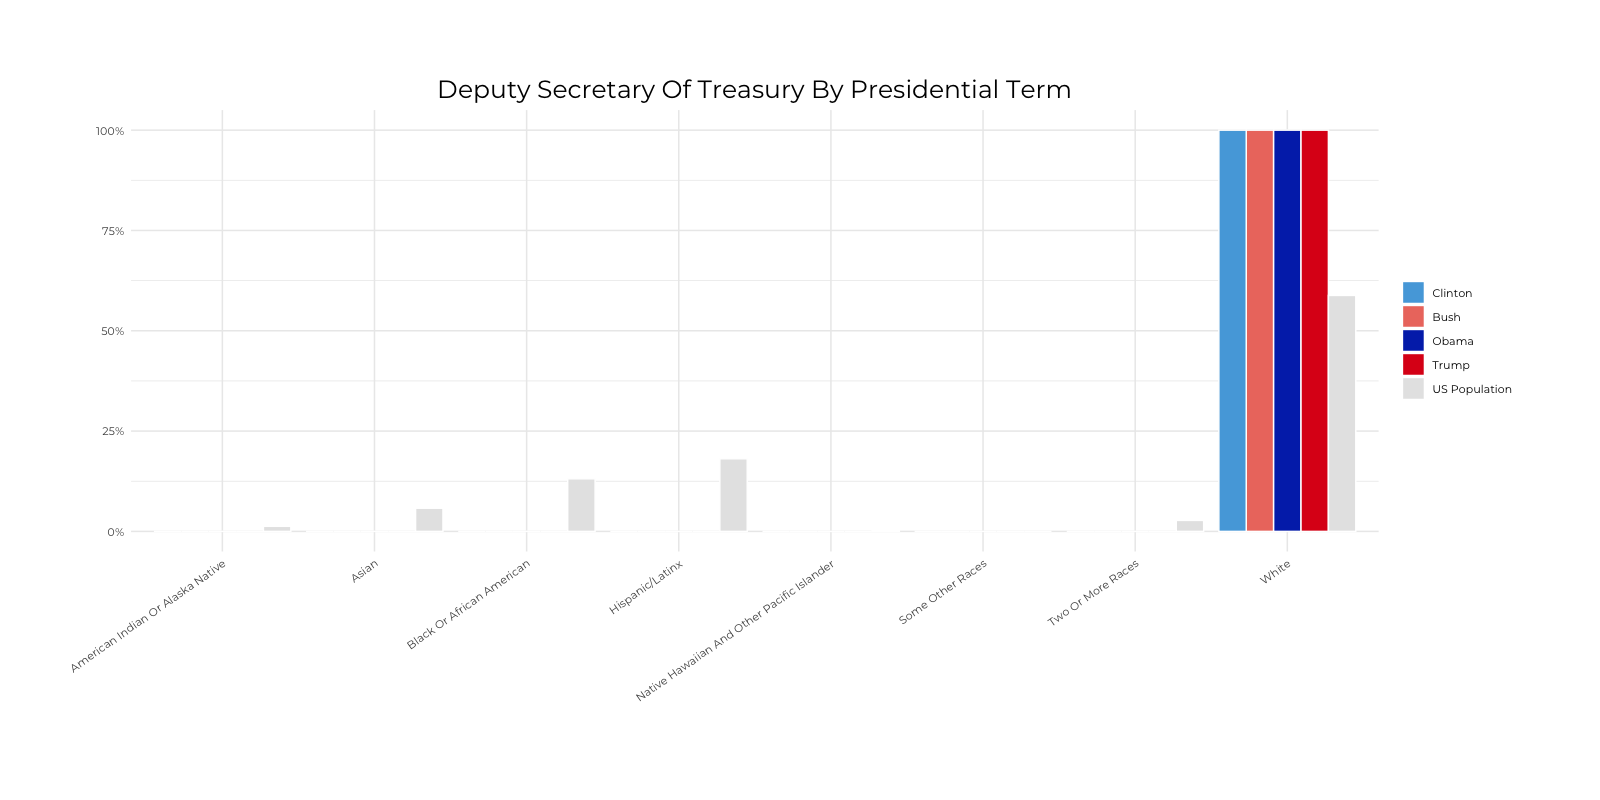 Graph about Racial Composition Comparison of Deputy Secretary of Treasury by Presidential Terms. More detailed text description below.